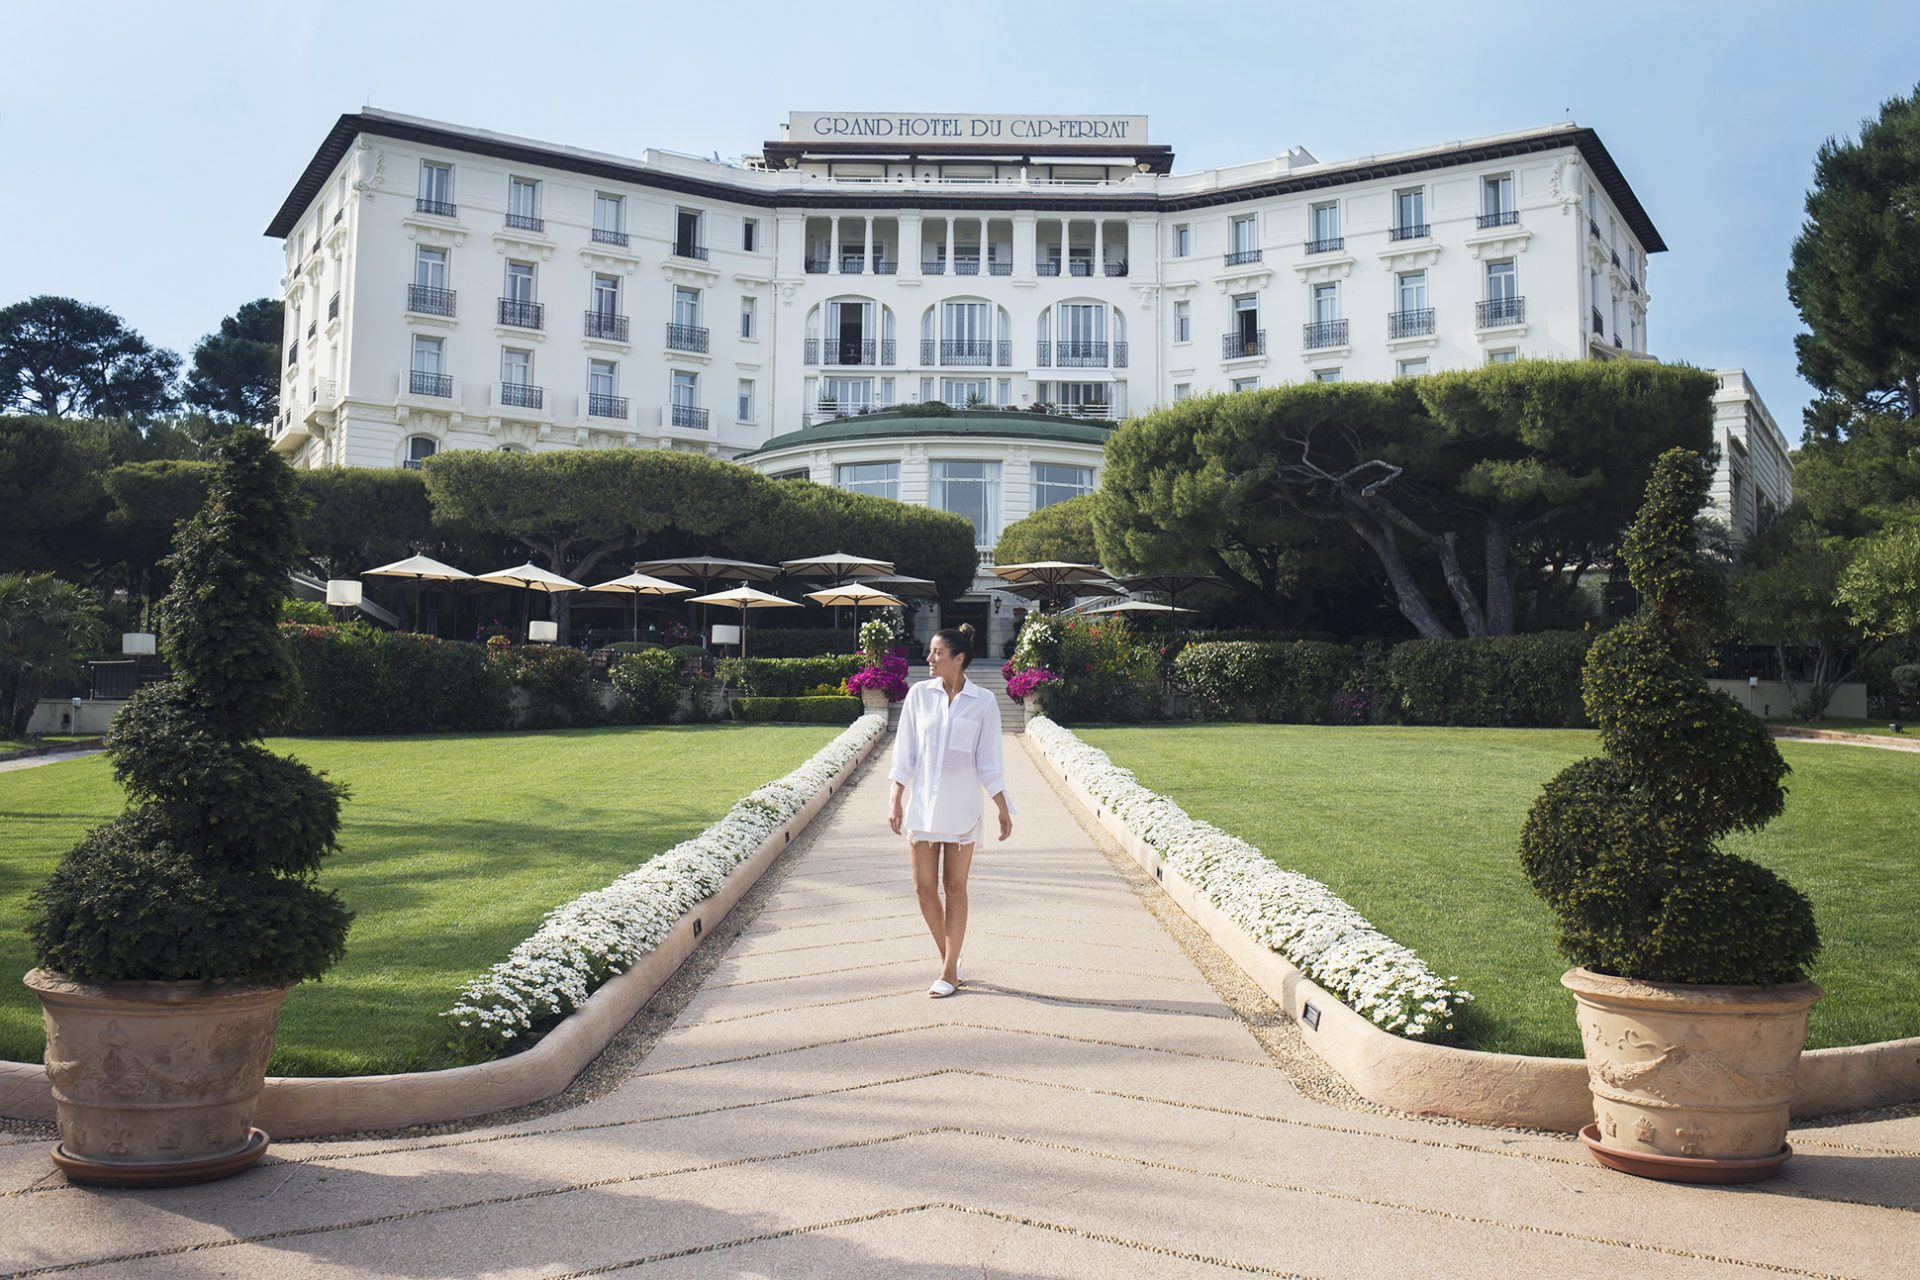 Grand-Hotel du Cap-Ferrat a Four Seasons Hotel